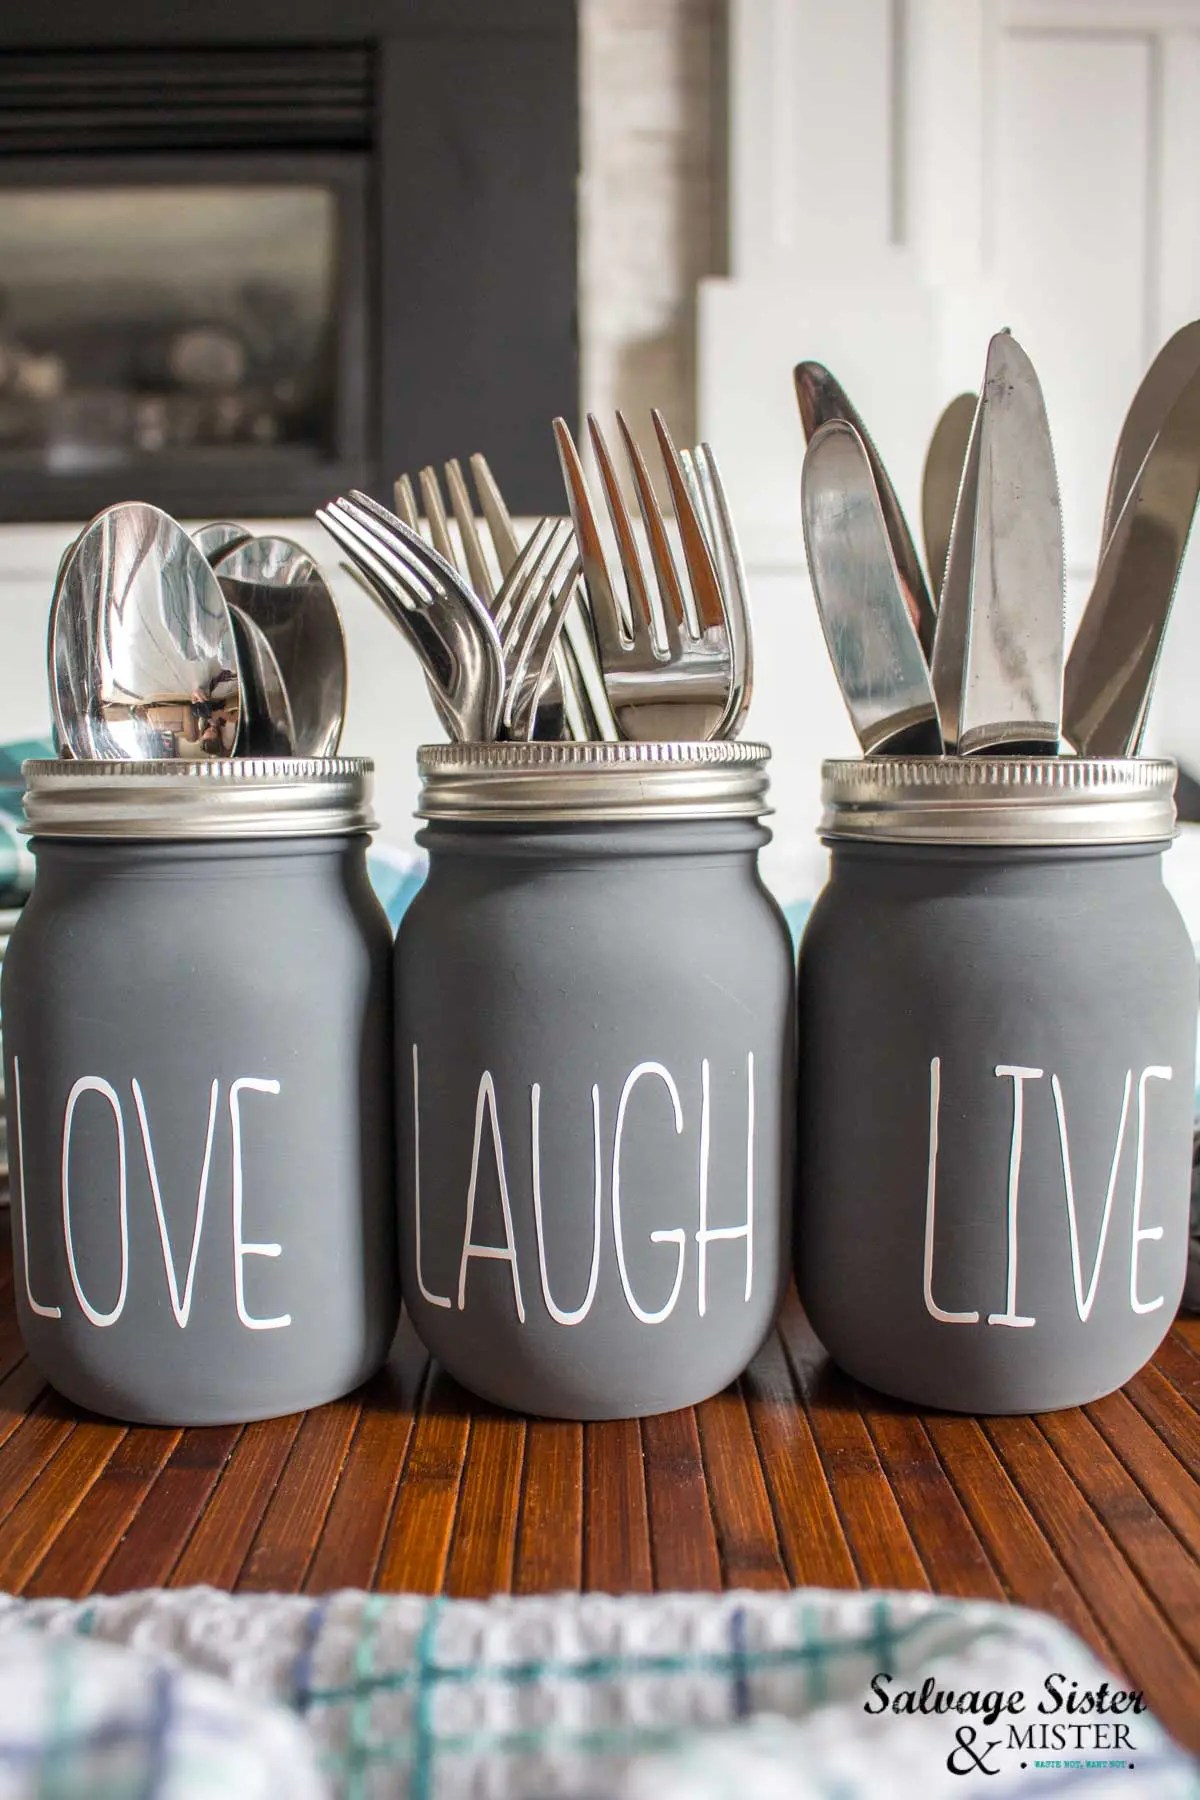 Three dark gray chalky painted mason jars with silver rims side by side on a cherry wood surface. Each jar is filled with different utensils and has white decals which say Love, Laugh and Live respectively.